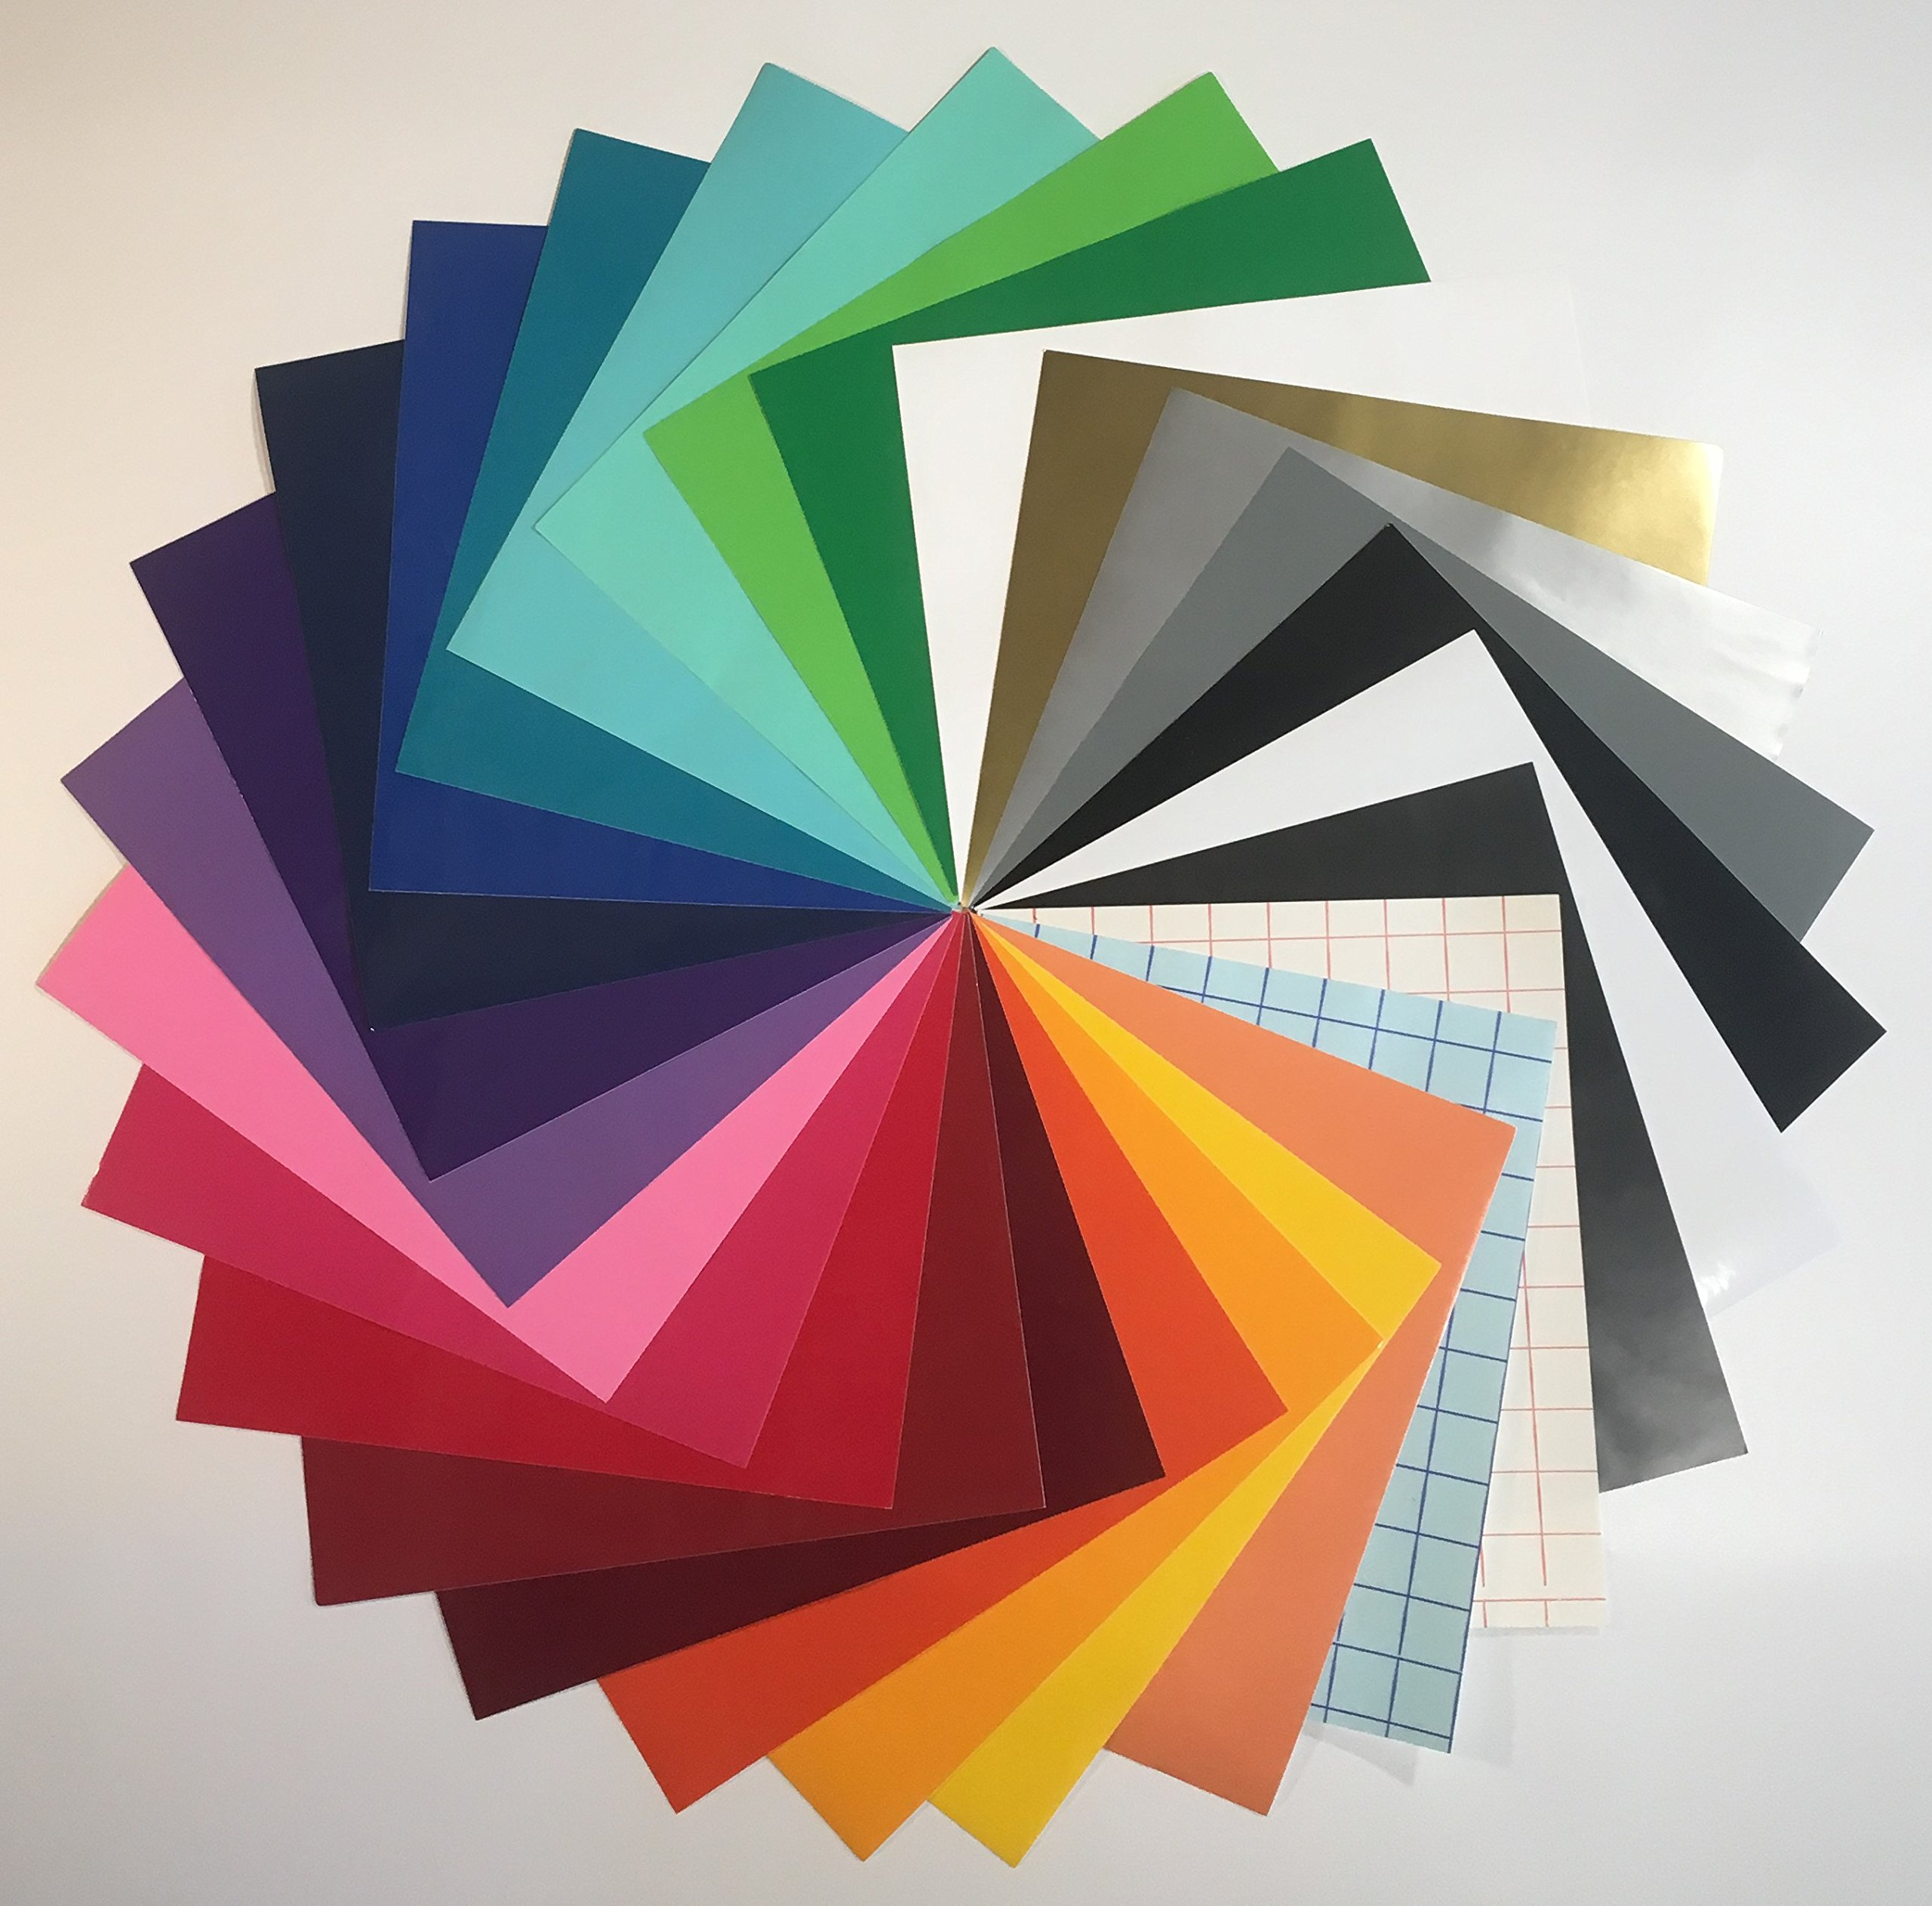 Cheap Vinyl Colors For Signs, find Vinyl Colors For Signs